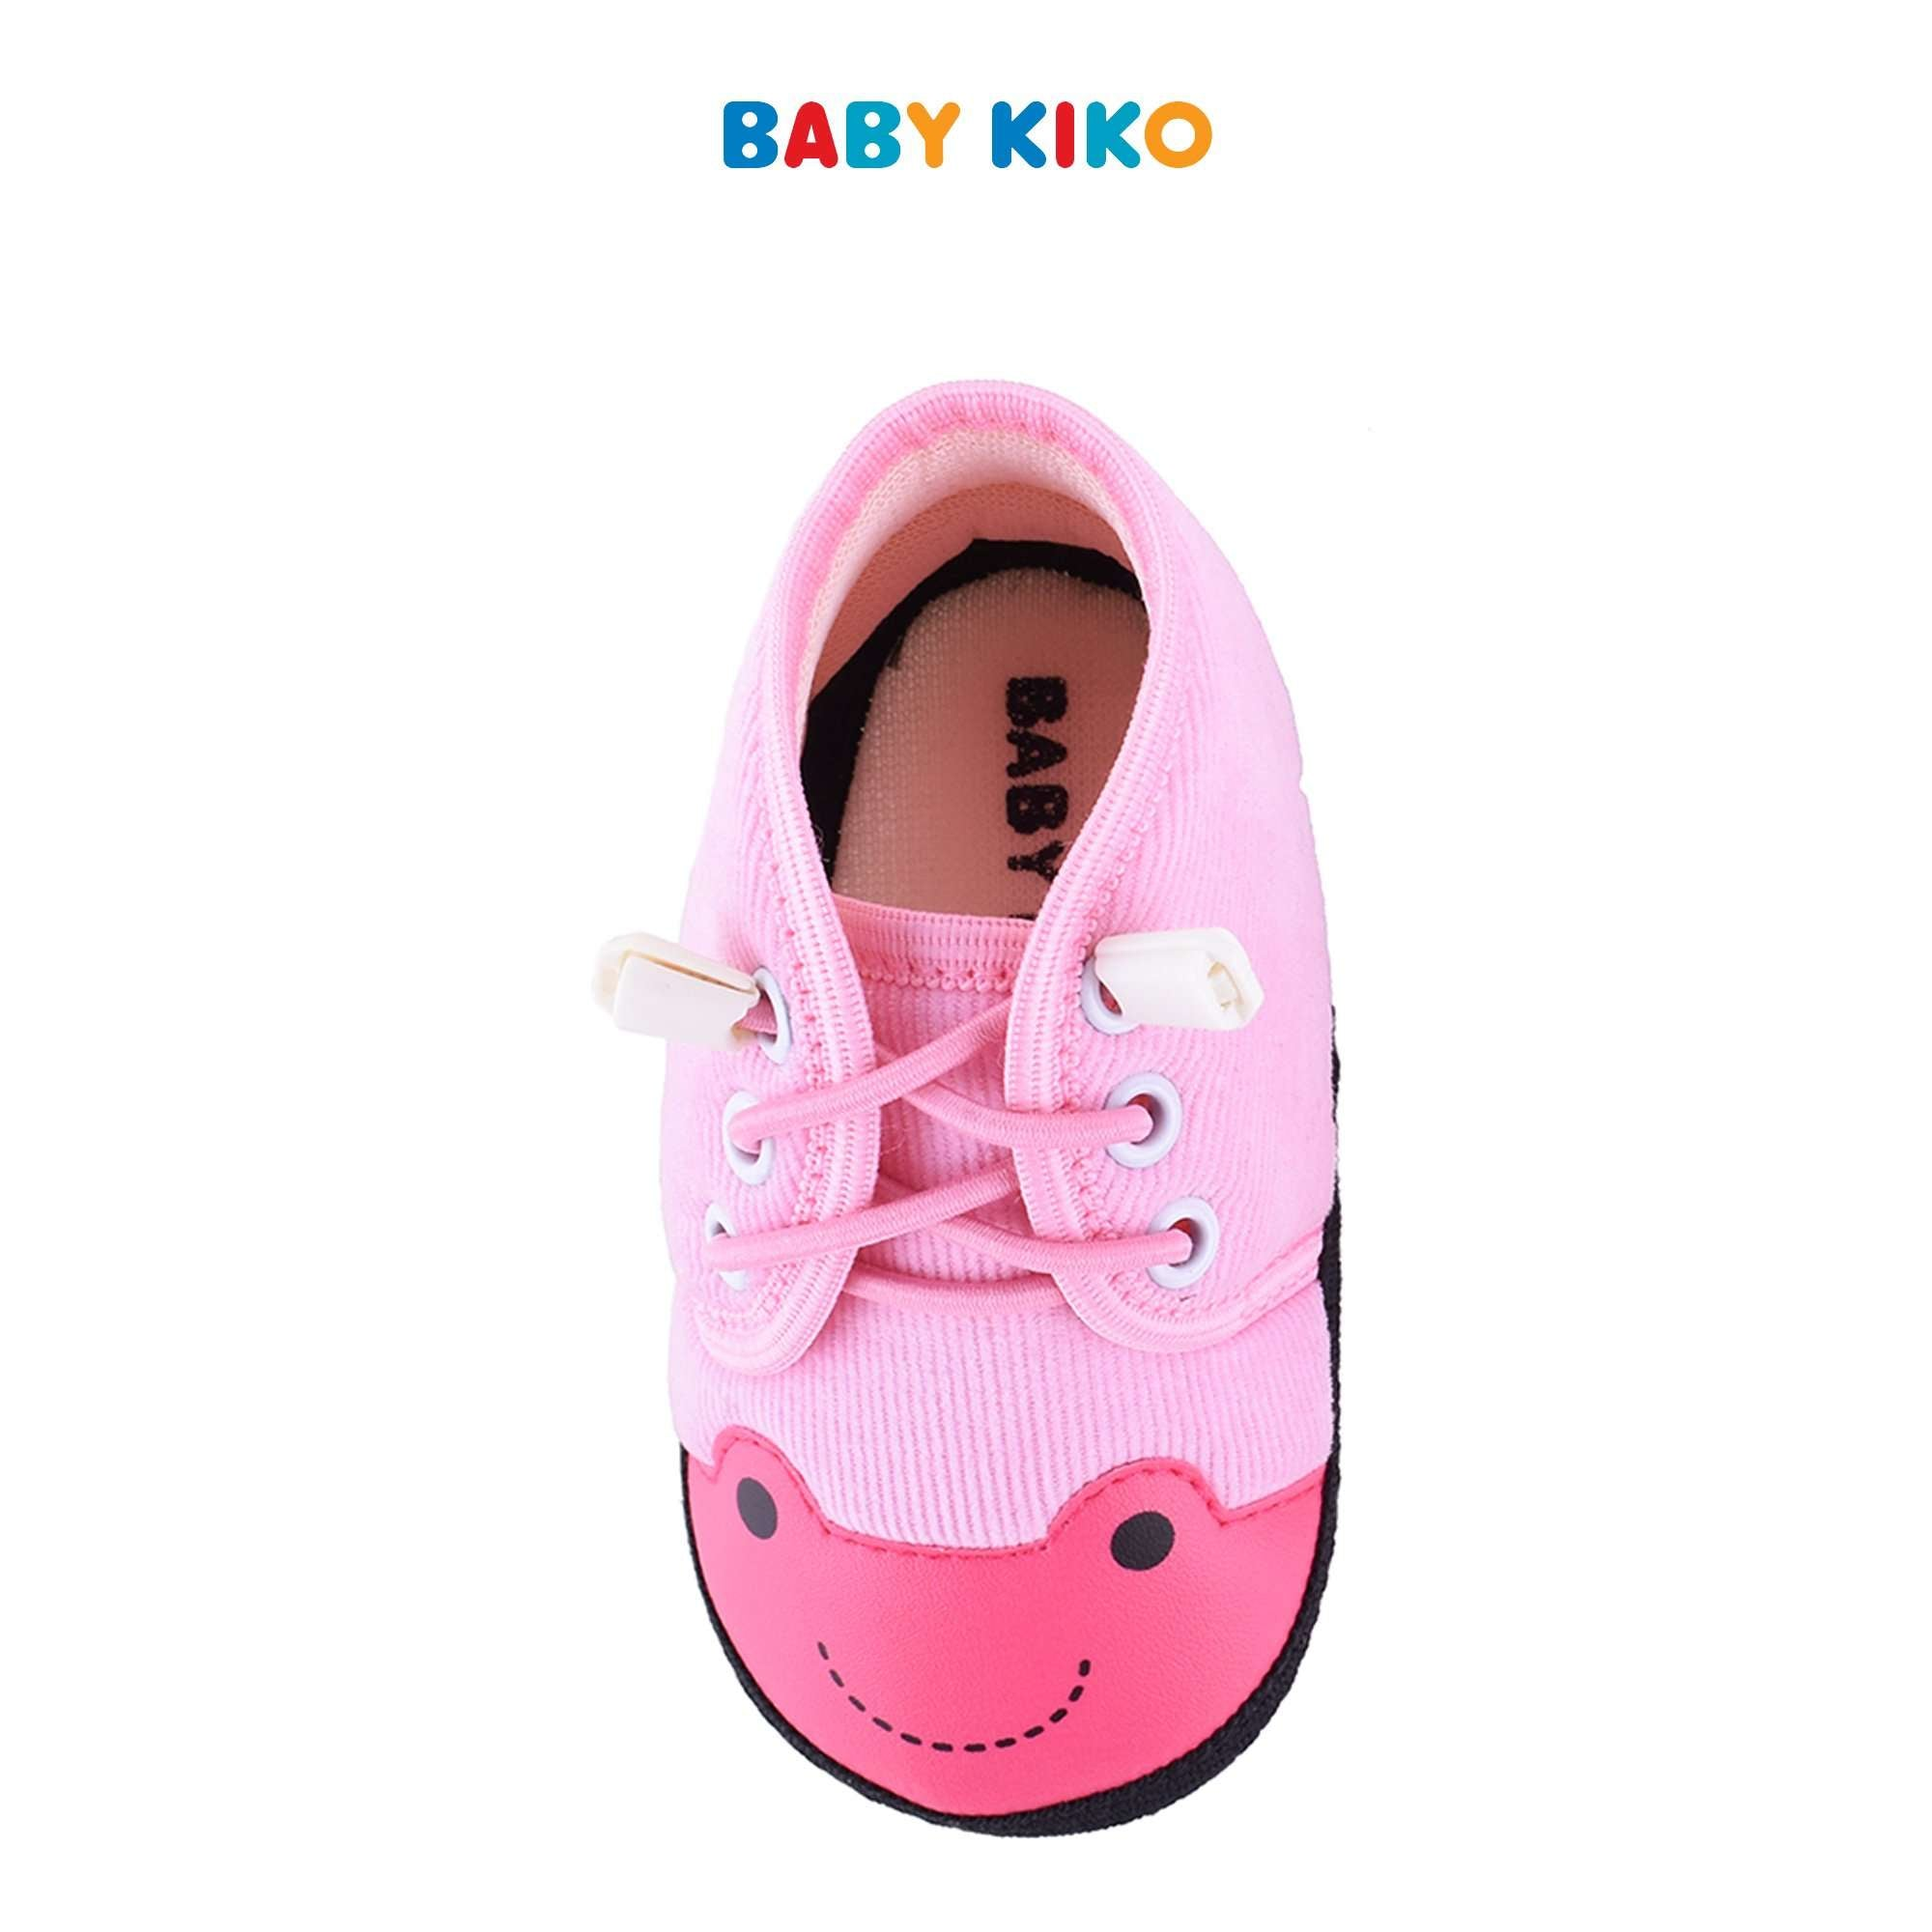 Baby KIKO Baby Girl Textile Shoes - Pink B924106-5097-P5 : Buy Baby KIKO online at CMG.MY